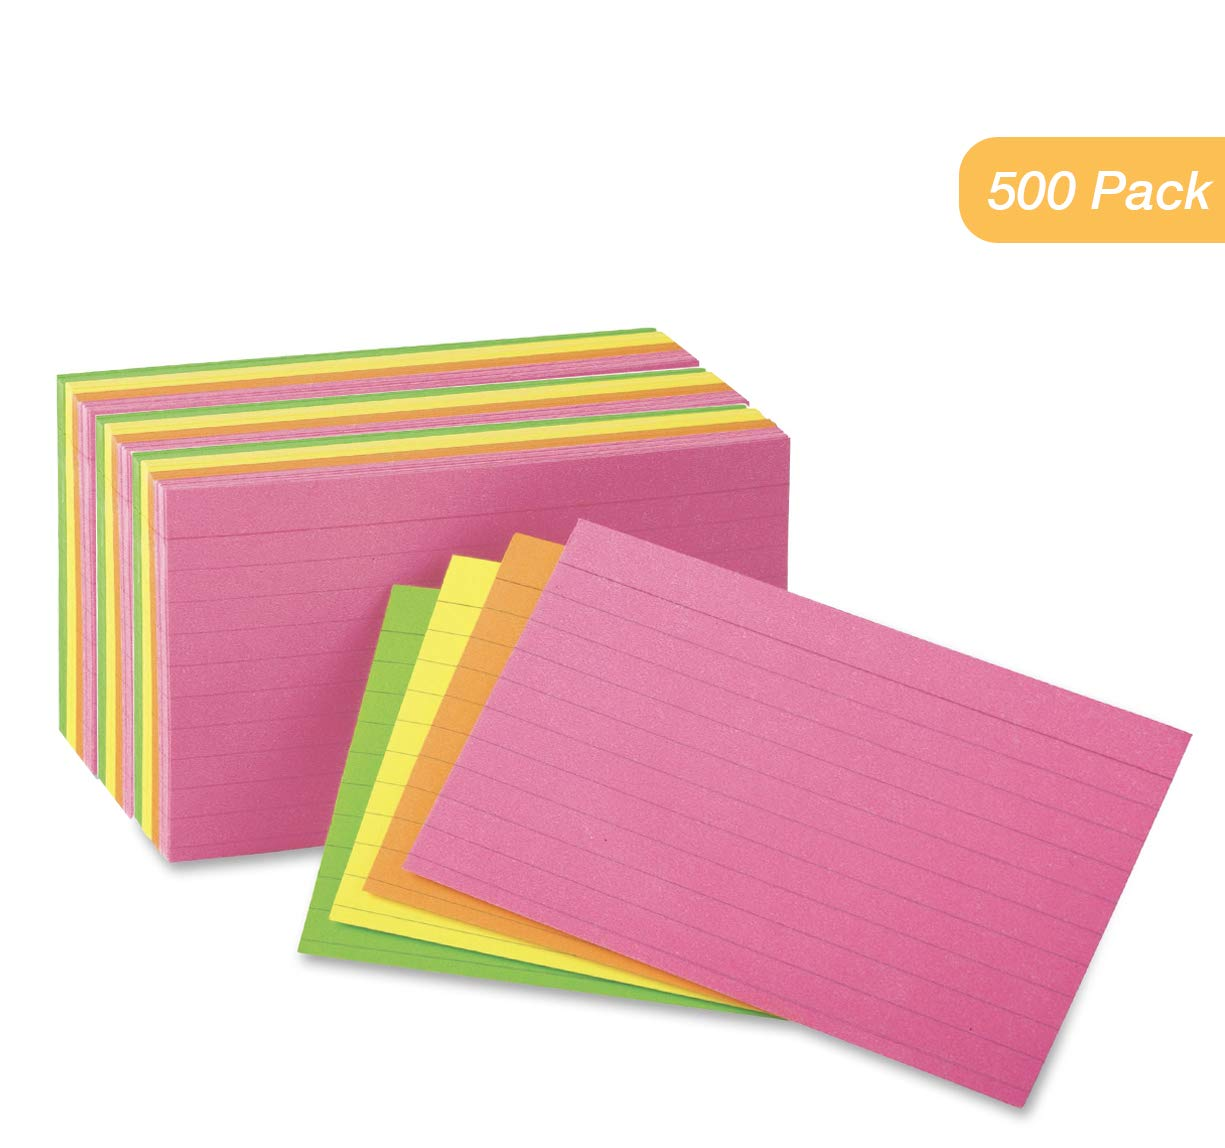 Index Cards - 3x5 Inch - Heavy Weight Ruled Index Card - Index-Cards Great for Notes, Organizing, Flash Cards, Lists, Recipes and More - 500 Cards (Neon)